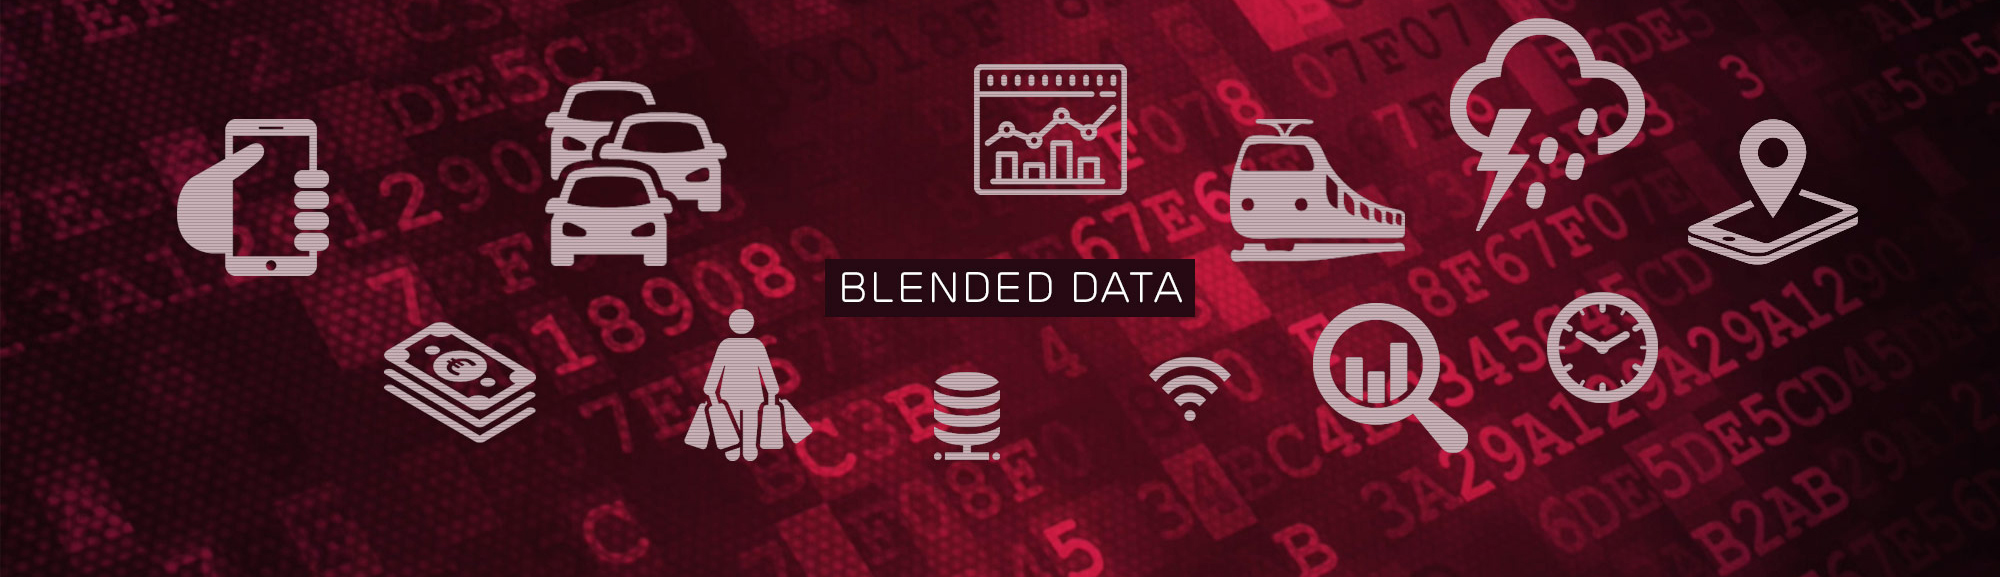 Blended data for optimal analysis